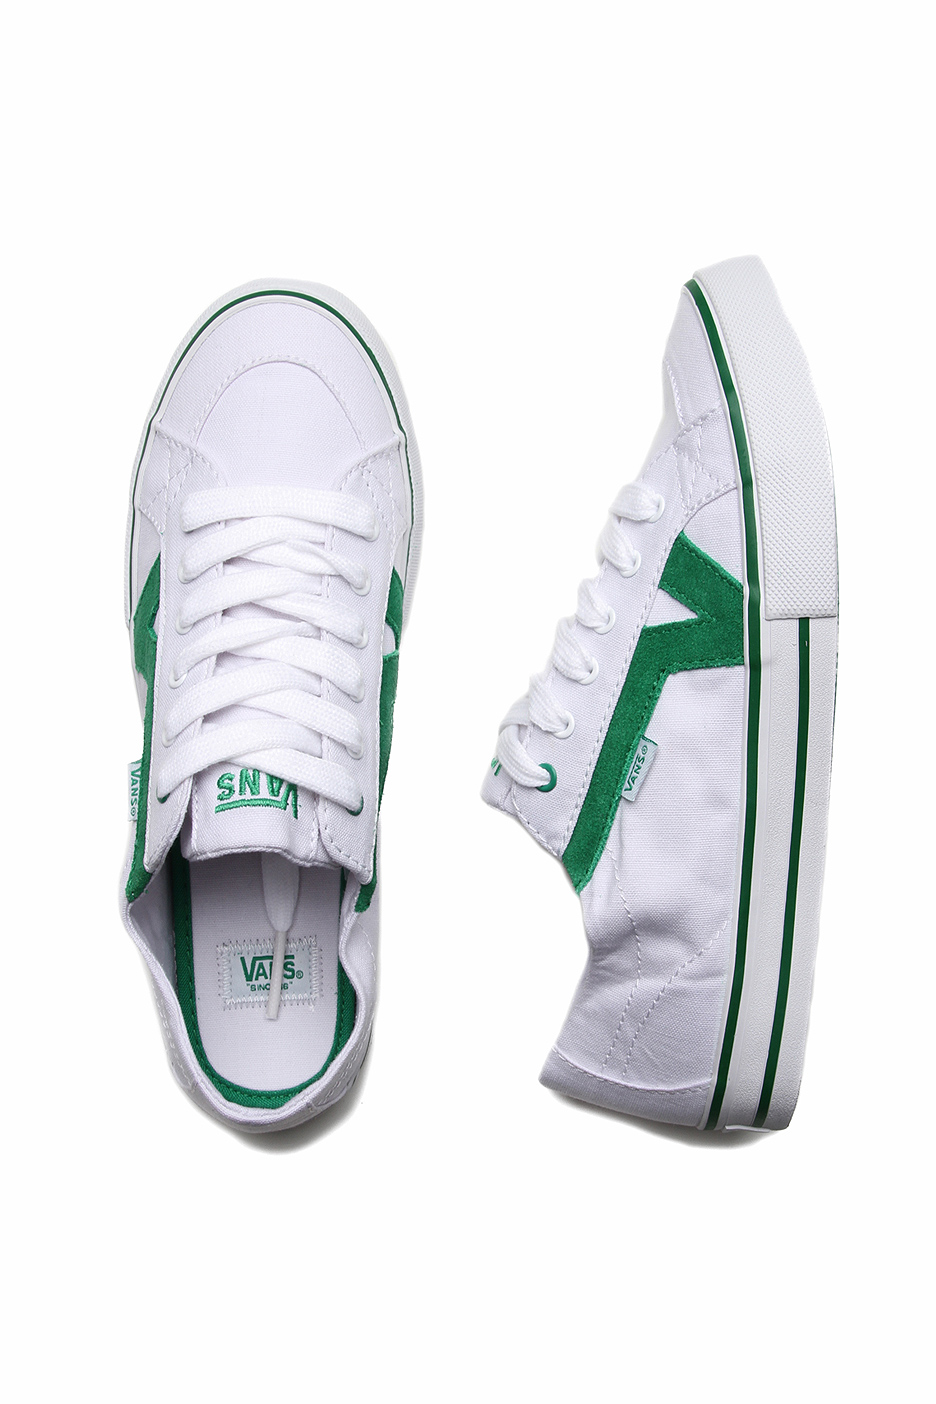 0796a9164536a9 Vans - Tory White Green - Girl Shoes - Impericon.com UK